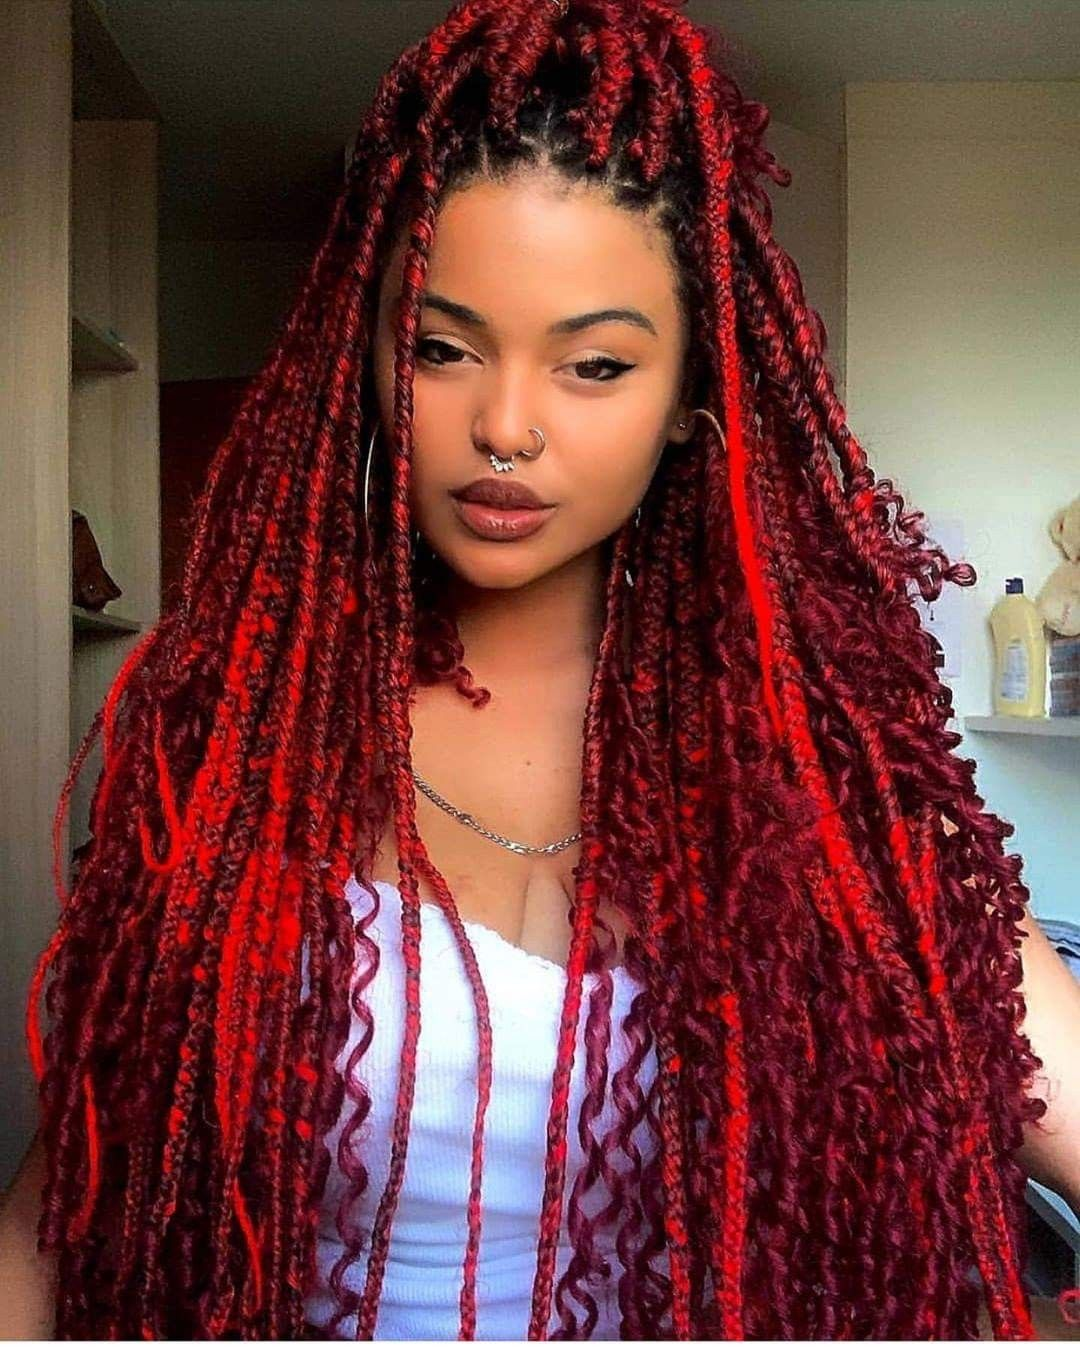 Pin By Raquel Barbosa On Trenzas In 2020 Beautiful Braided Hair Braided Hairstyles Red Box Braids